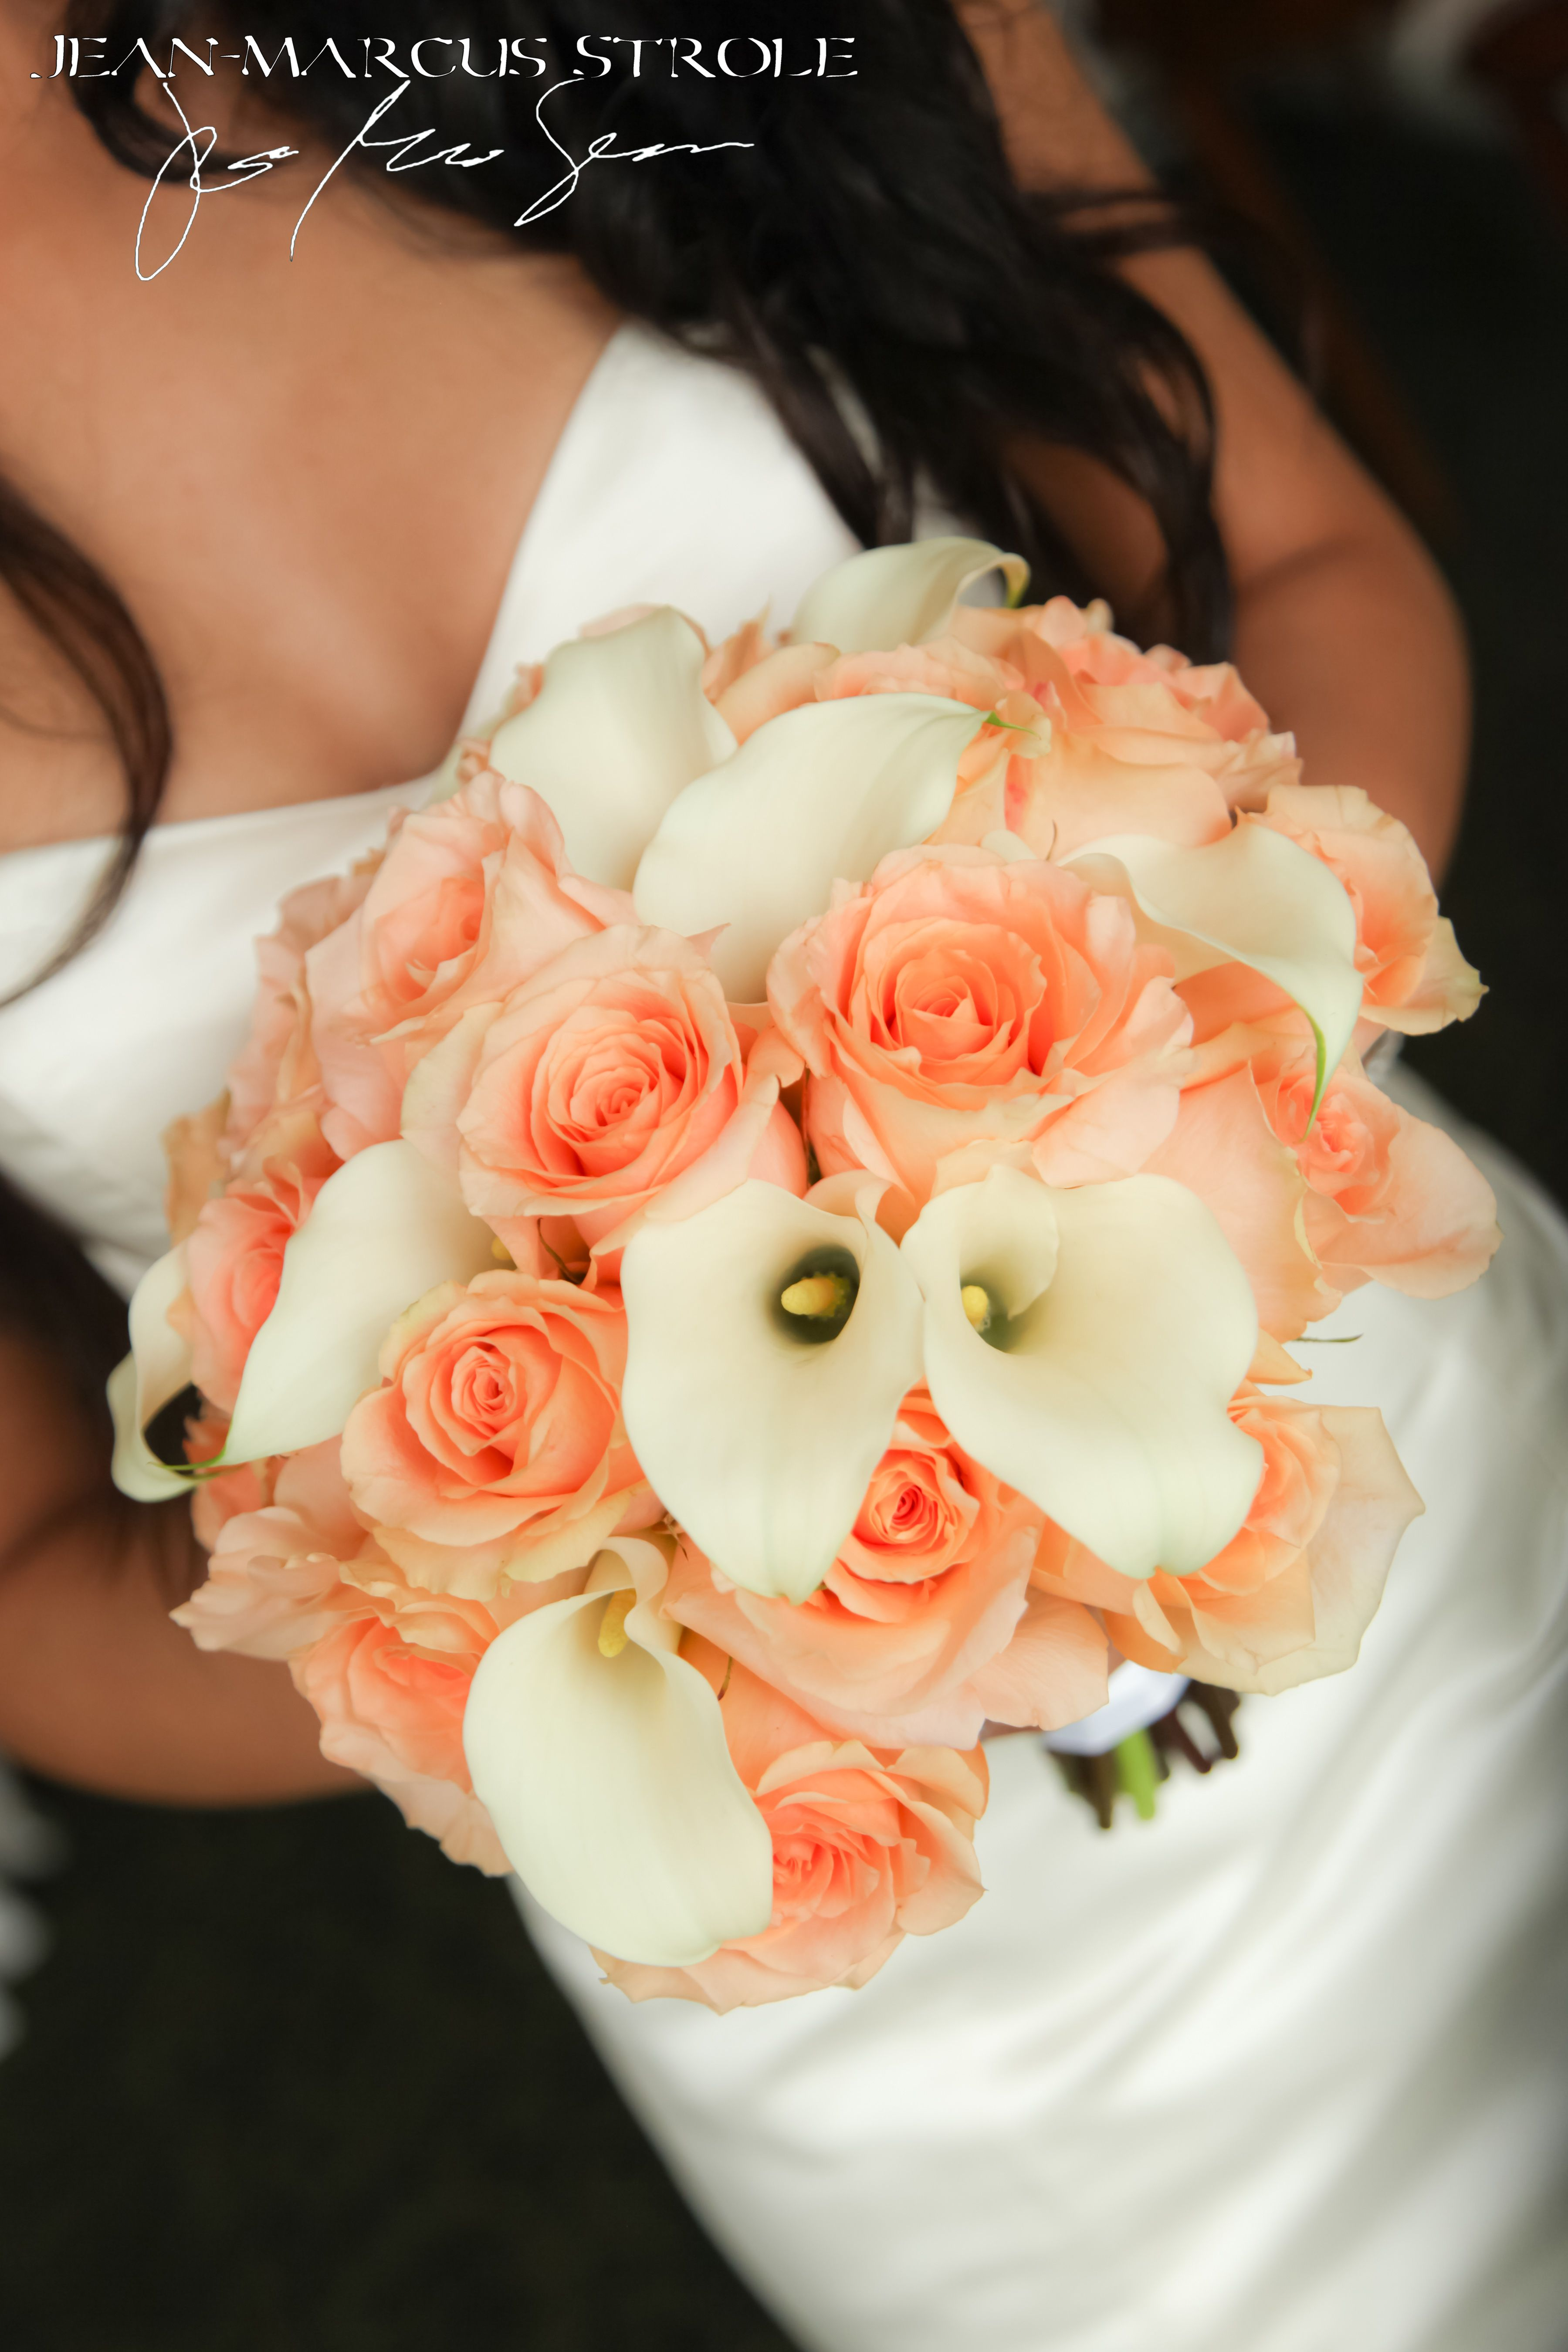 A Peach And White Bouquet With Peach Roses And White Calla Lilies